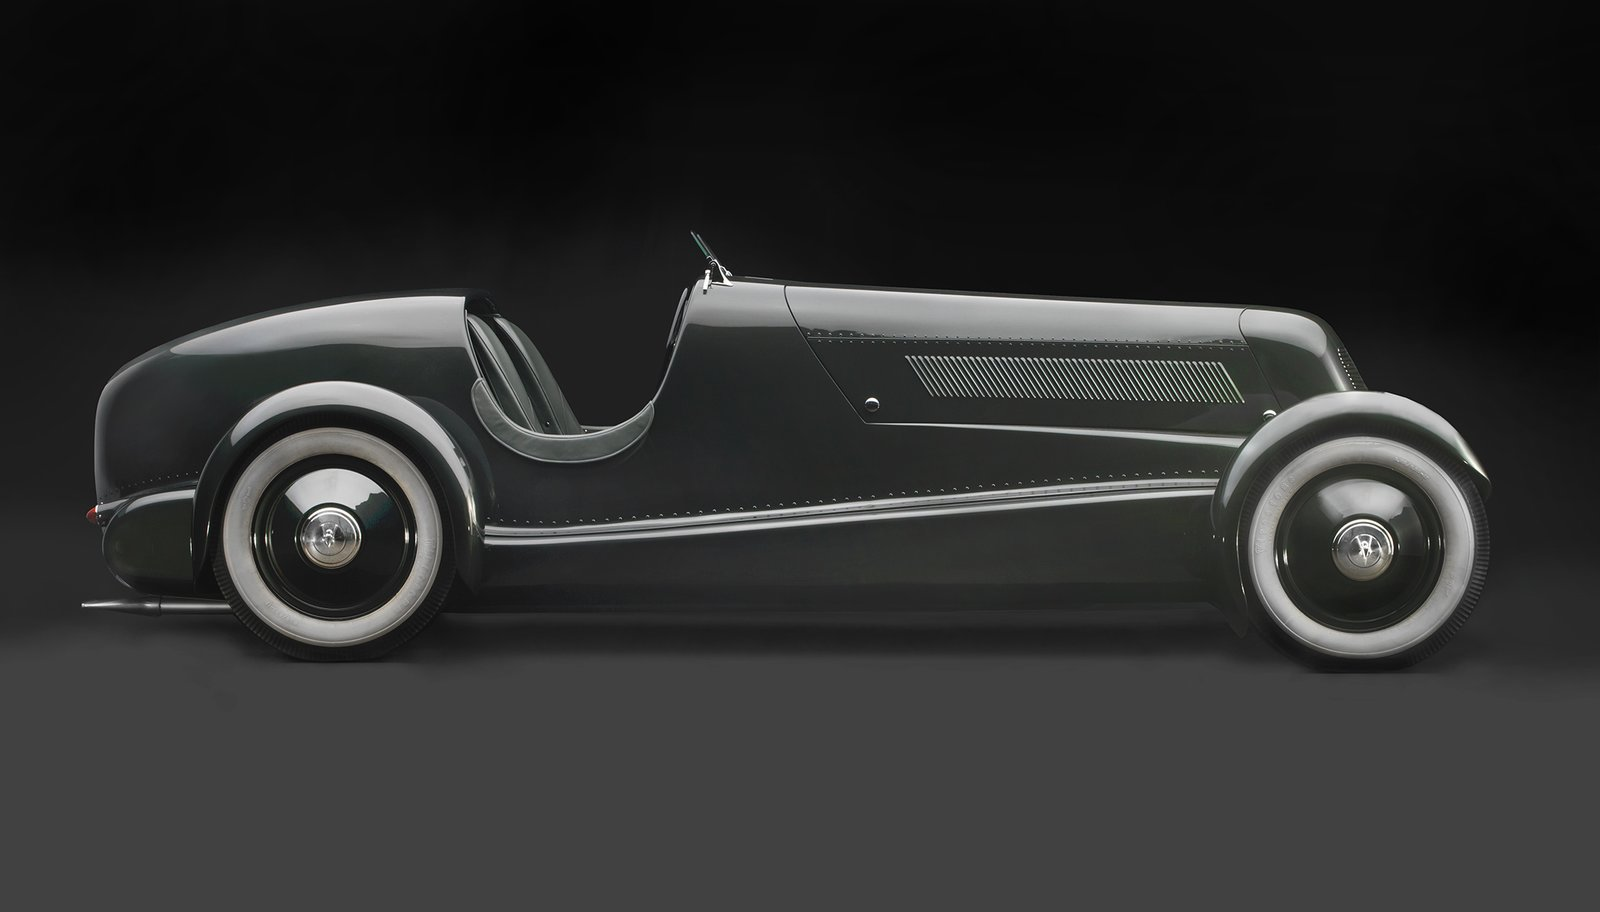 1934 Edsel Ford's Model 40 Speedster, Courtesy of the Edsel and Eleanor Ford House Examining the Architecture of the Art Deco Automobile - Photo 14 of 15